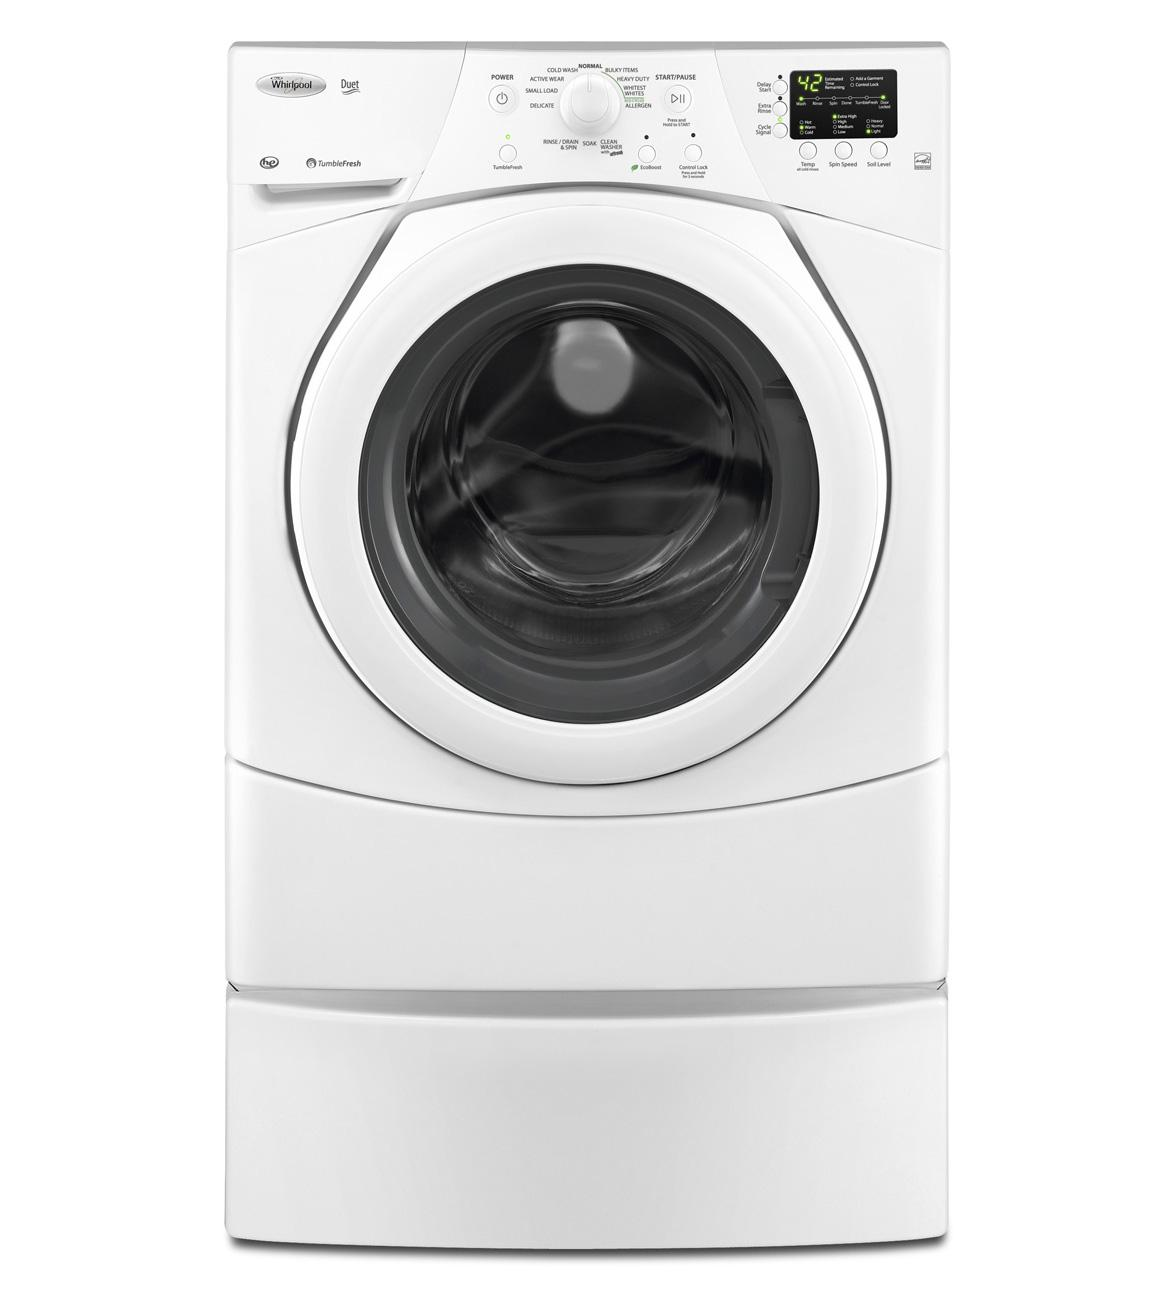 Wfw9151yw Whirlpool Wfw9151yw Duet Front Load Tumble